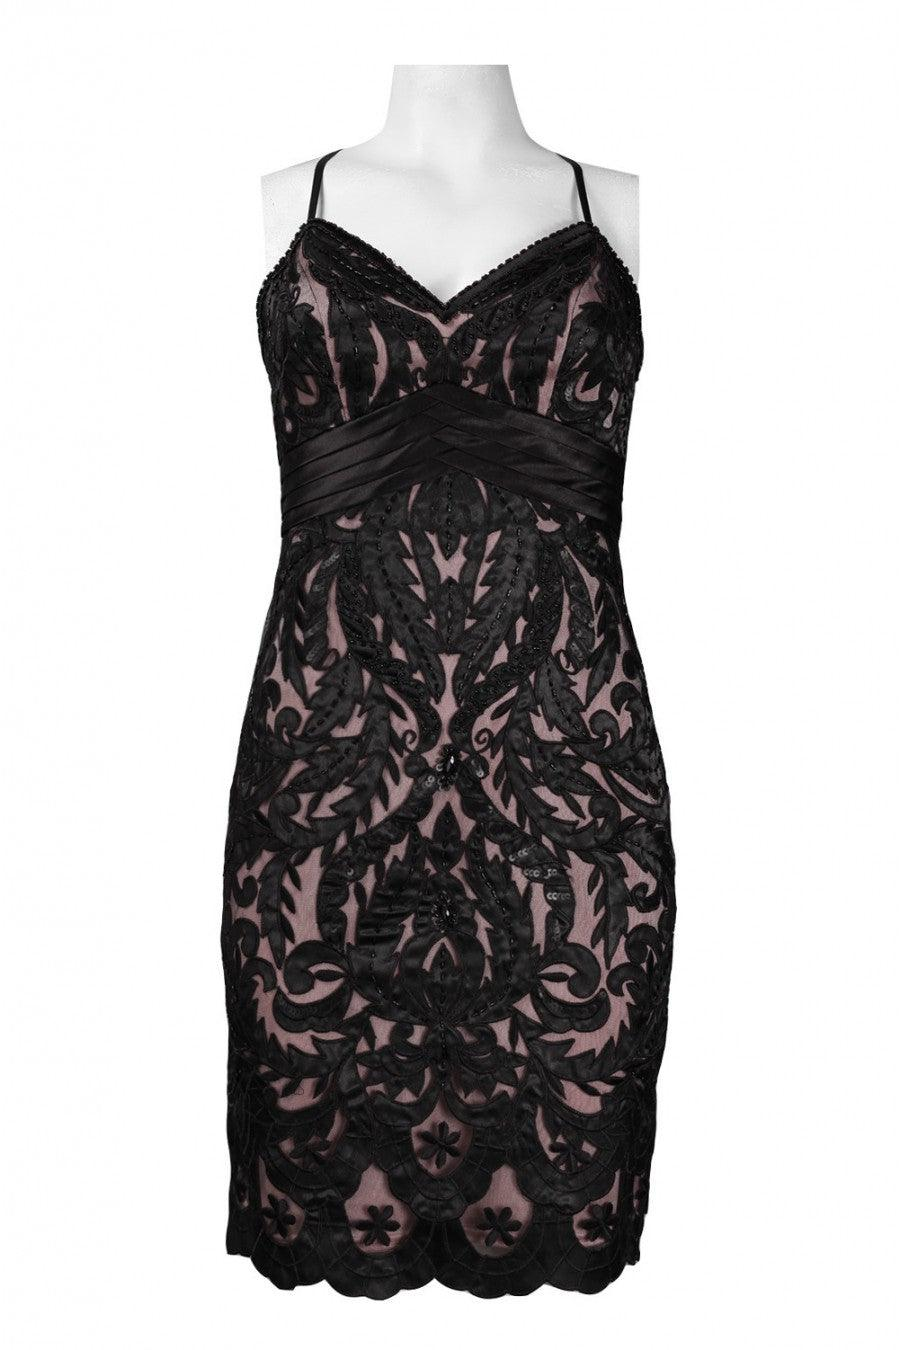 Sue Wong Short Dress Cocktail Formal - The Dress Outlet Black Rose Sue Wong